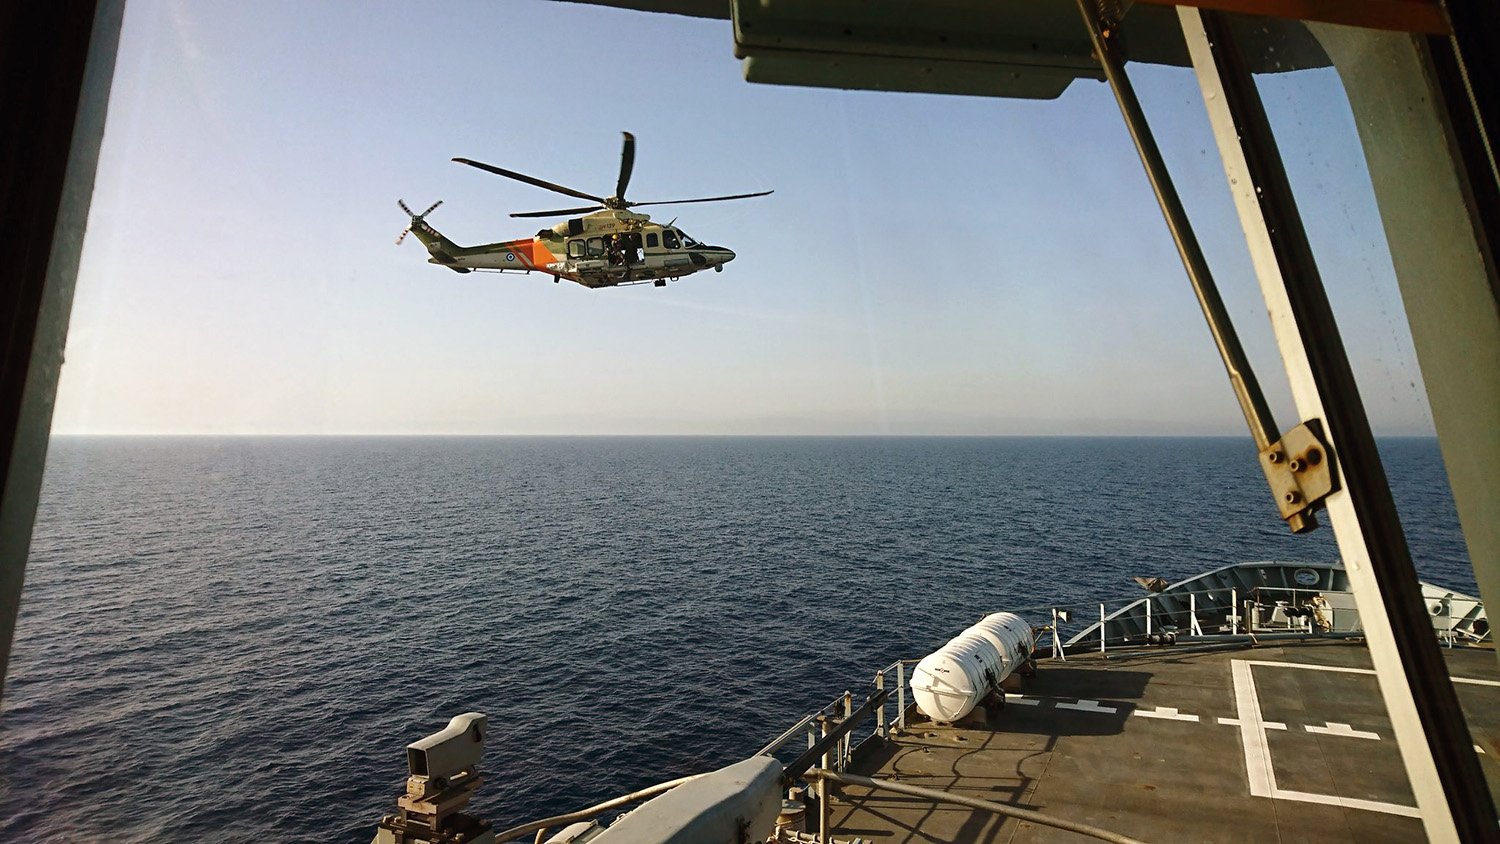 Echo's expert rescuers help Cyprus forces prepare for disaster at sea